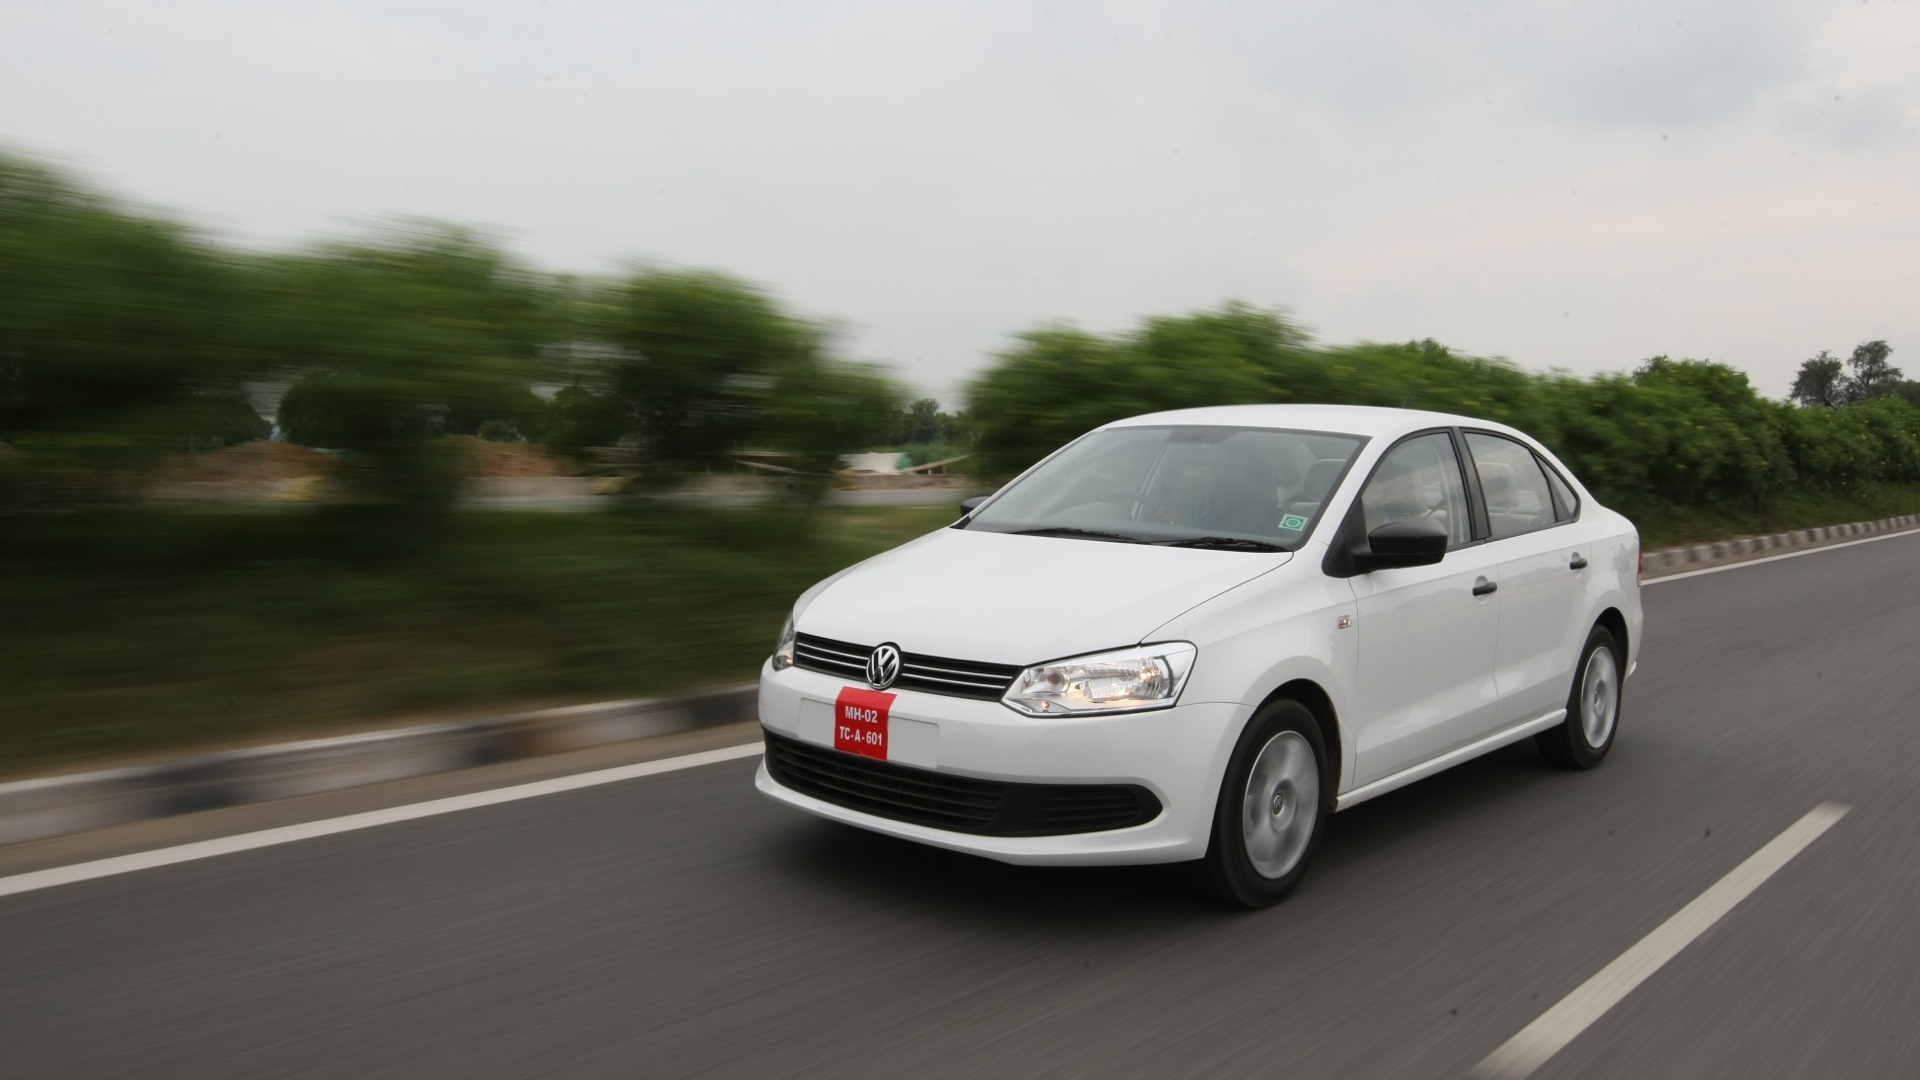 volkswagen vento 2017 price mileage reviews specification gallery overdrive. Black Bedroom Furniture Sets. Home Design Ideas